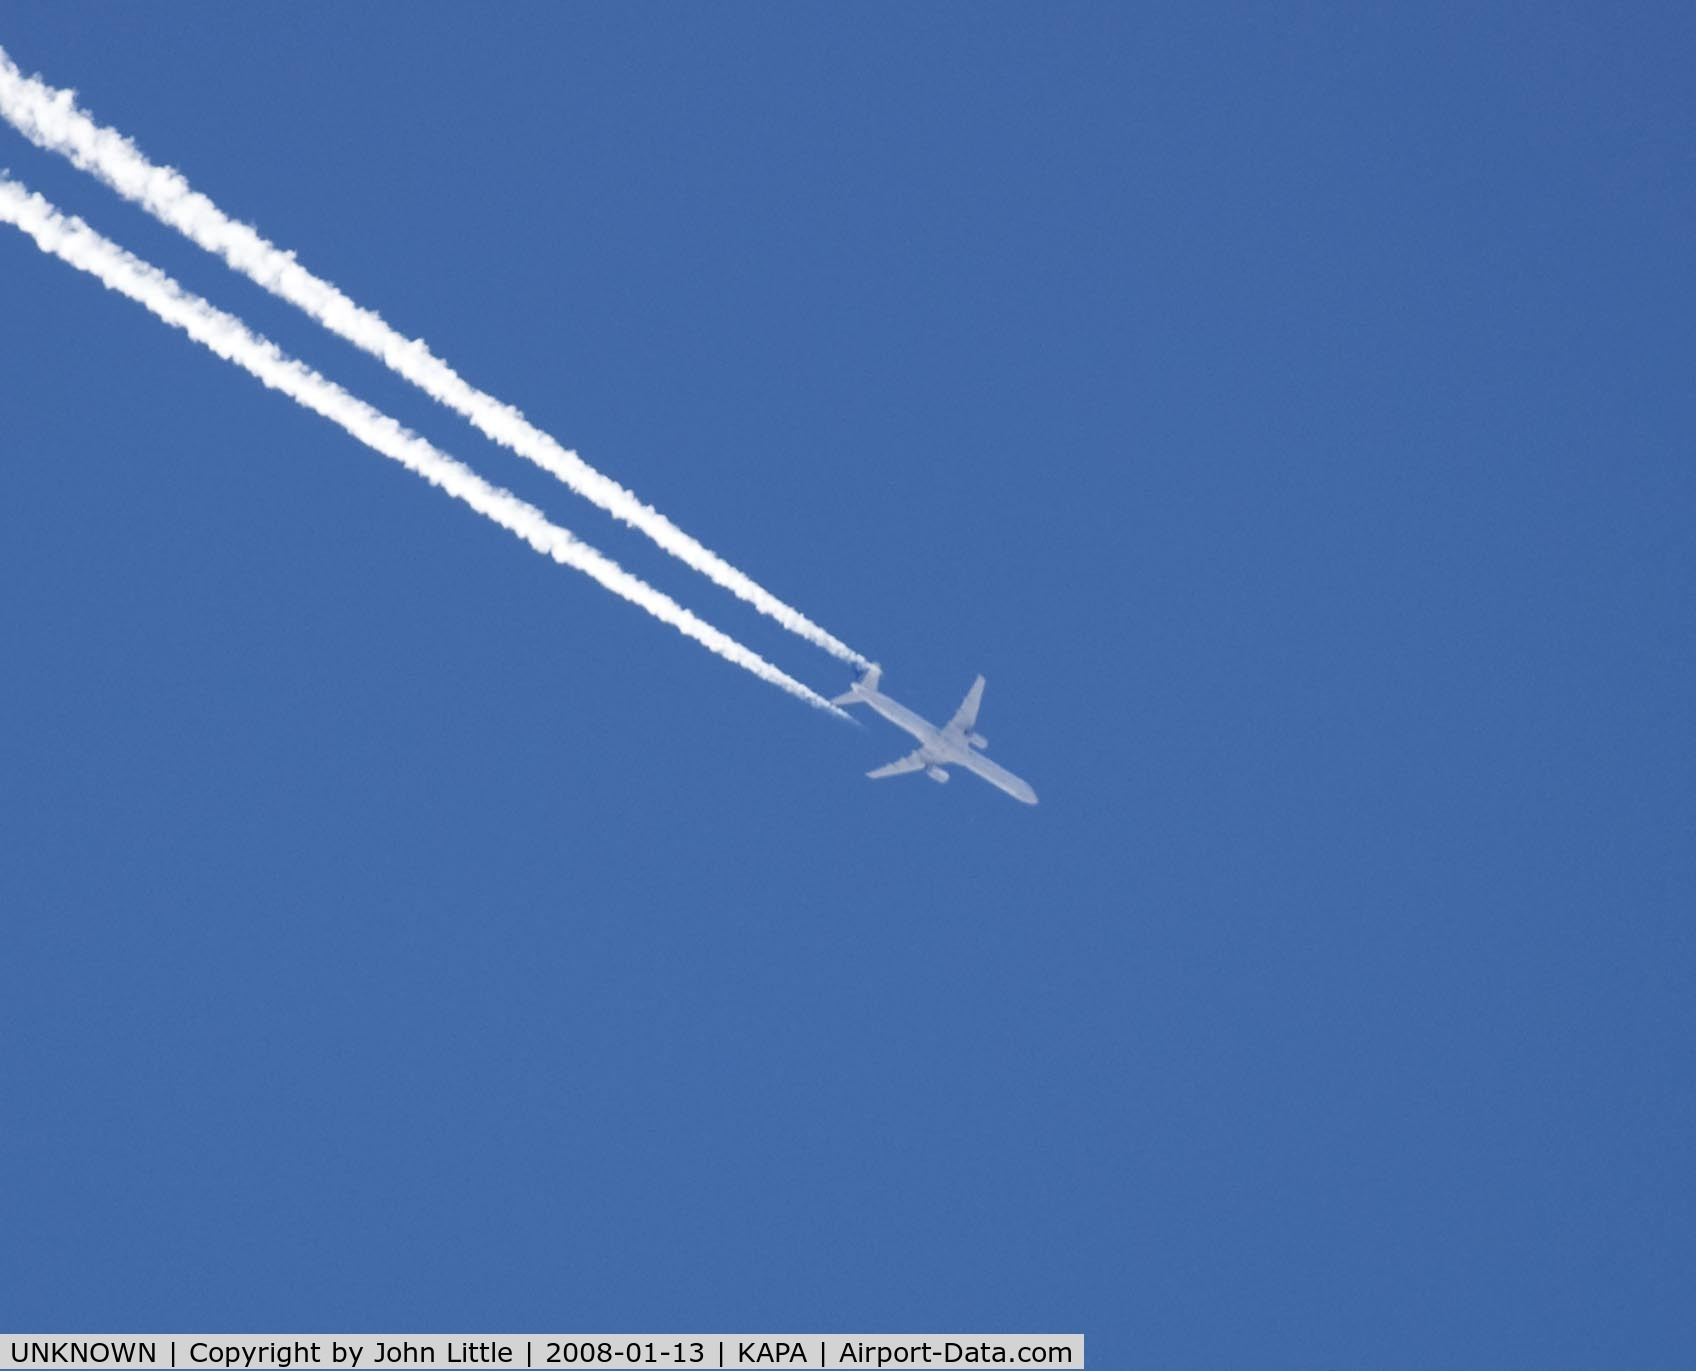 UNKNOWN, , Lufthansa 757 overflight of Centennial